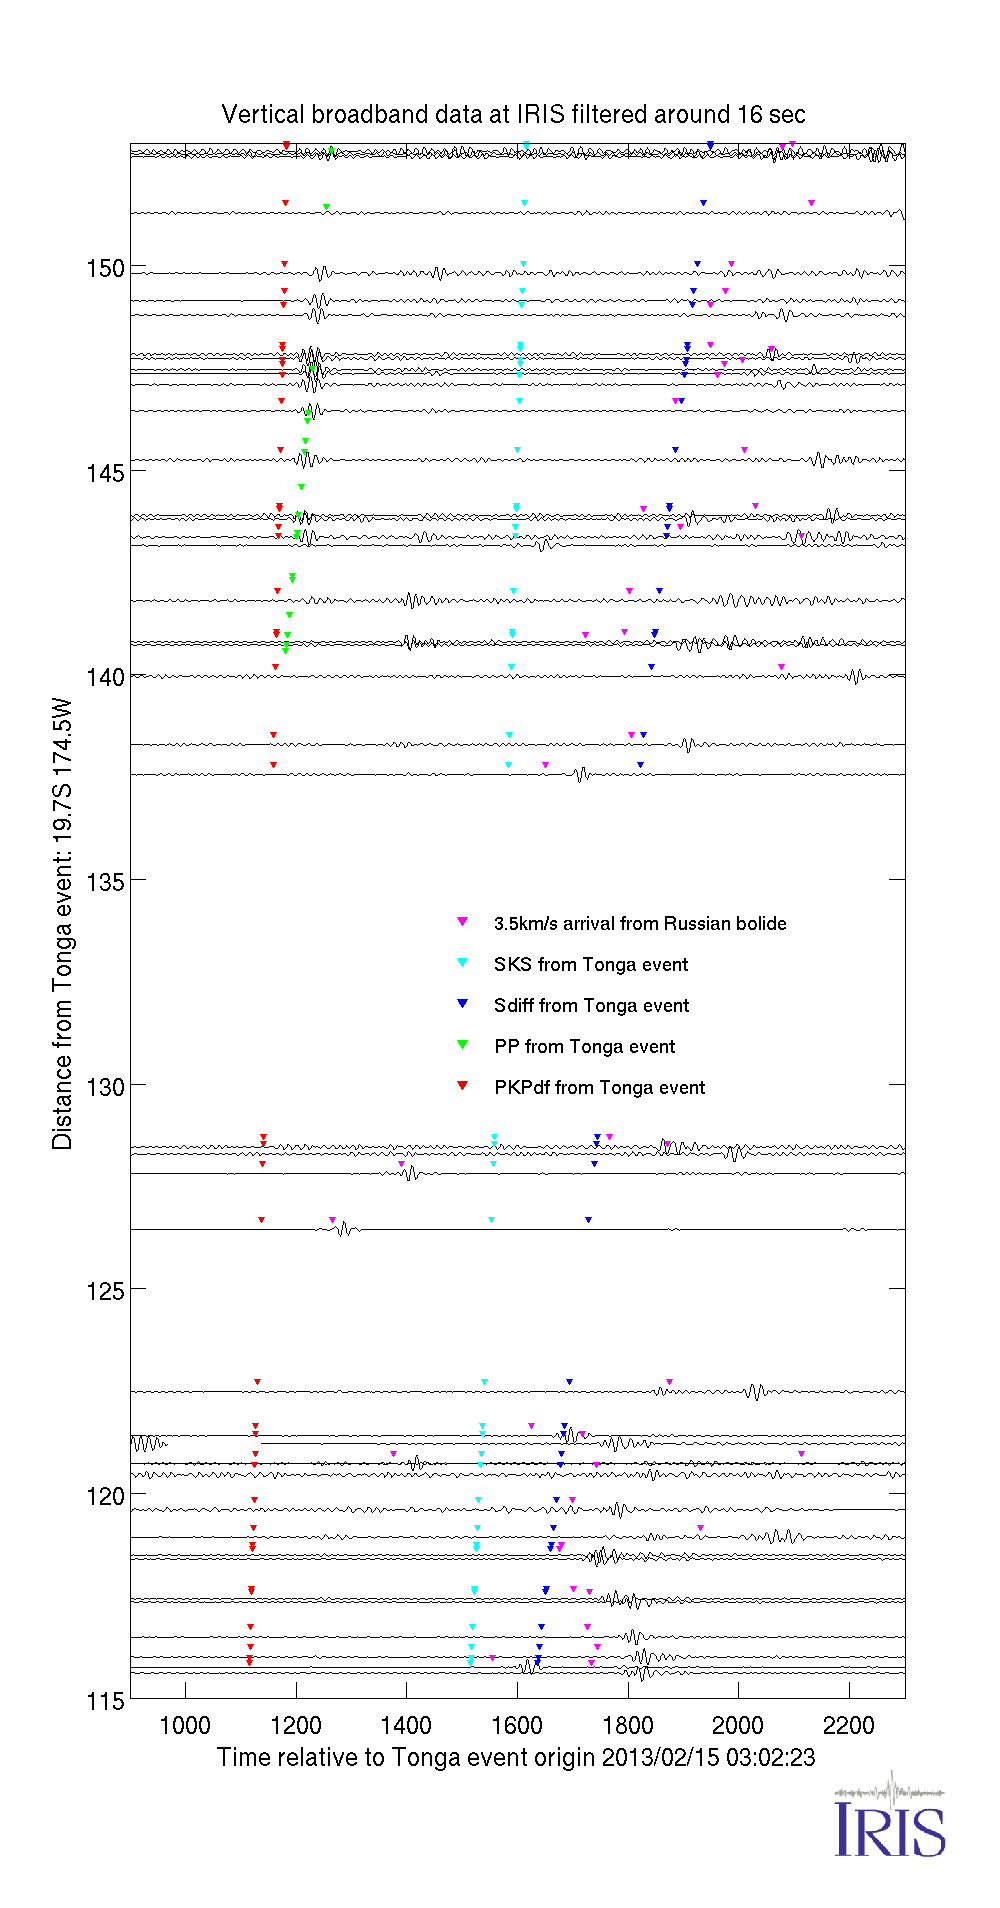 BHZ record sections of data from Tonga event with narrow passband filtering